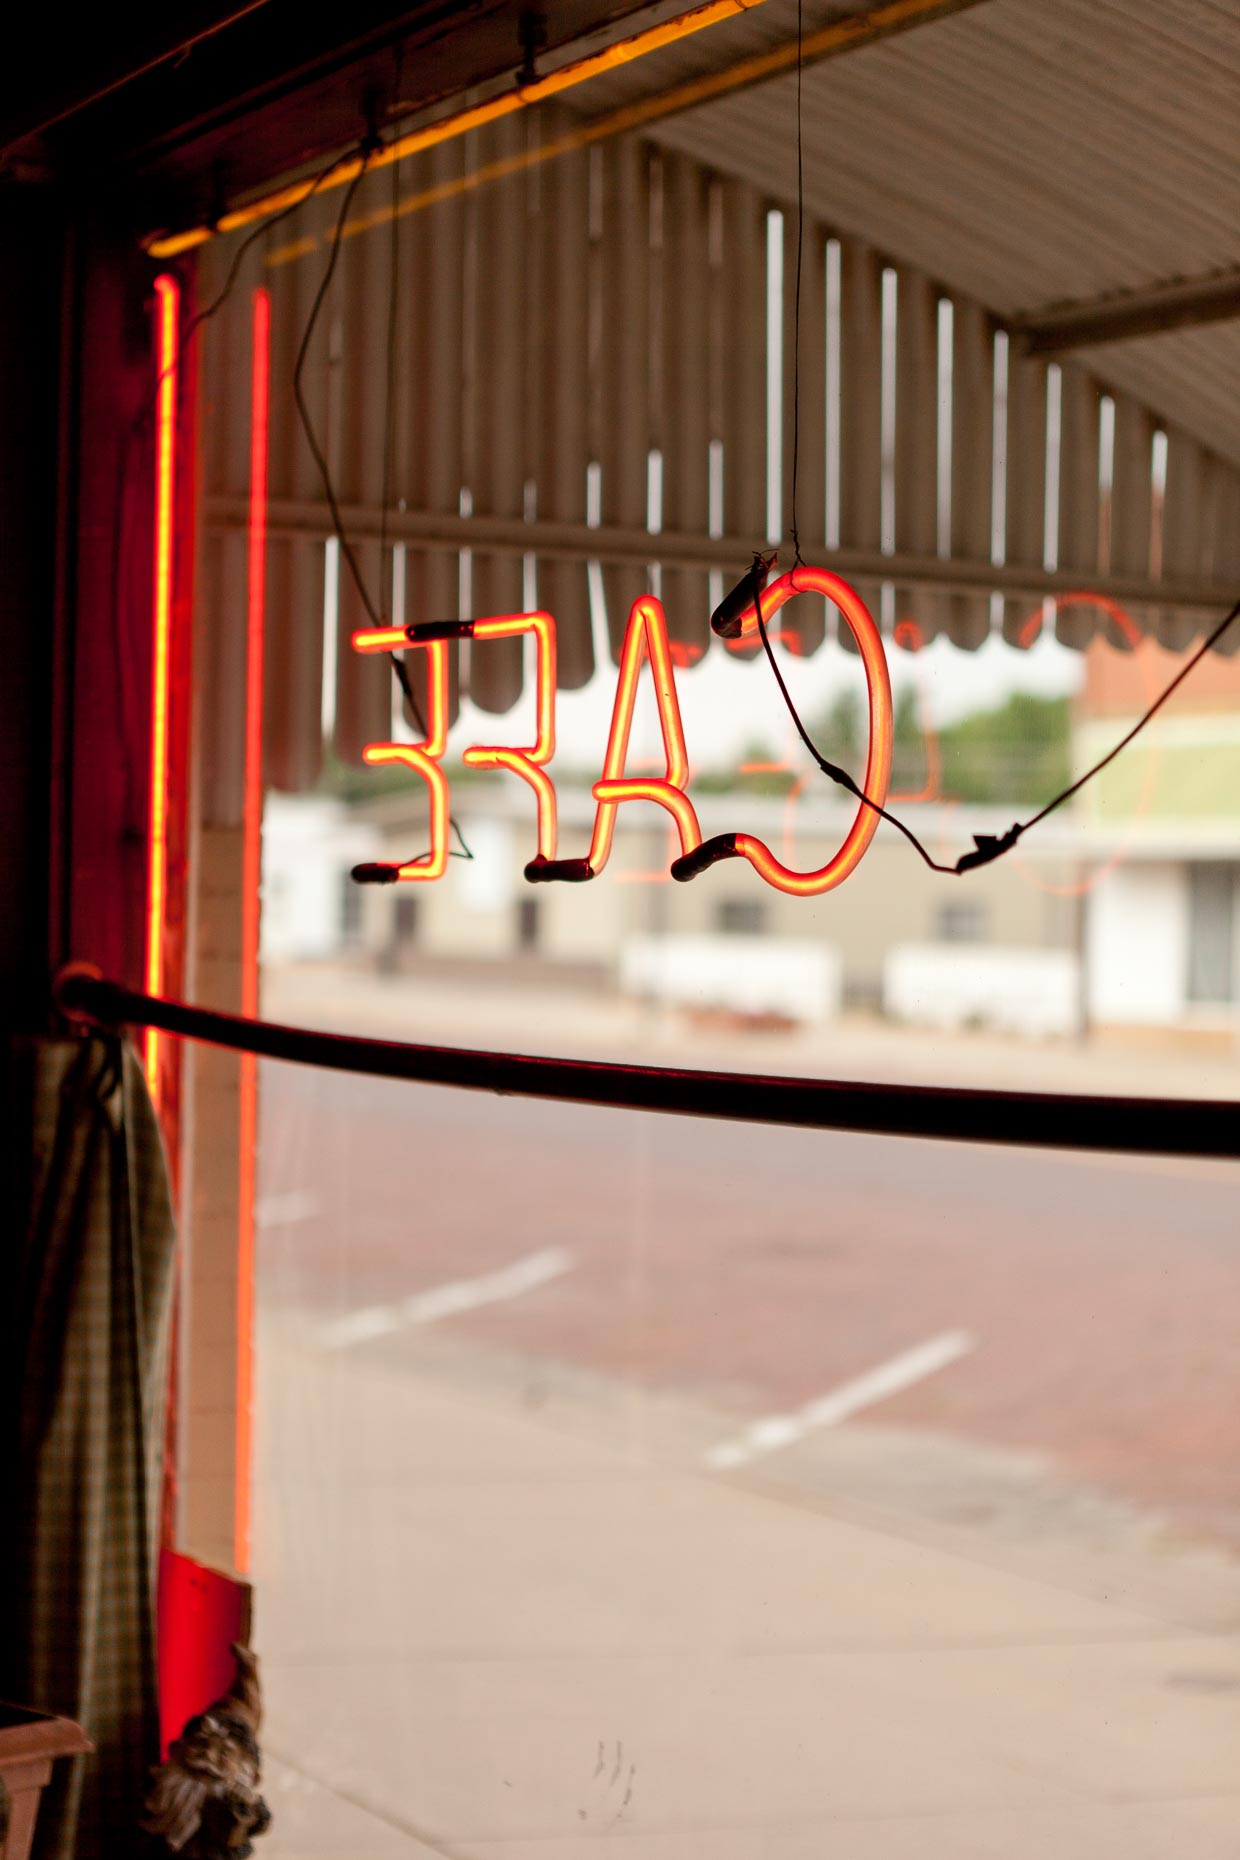 Neon cafe sign in restaurant window by David Zaitz